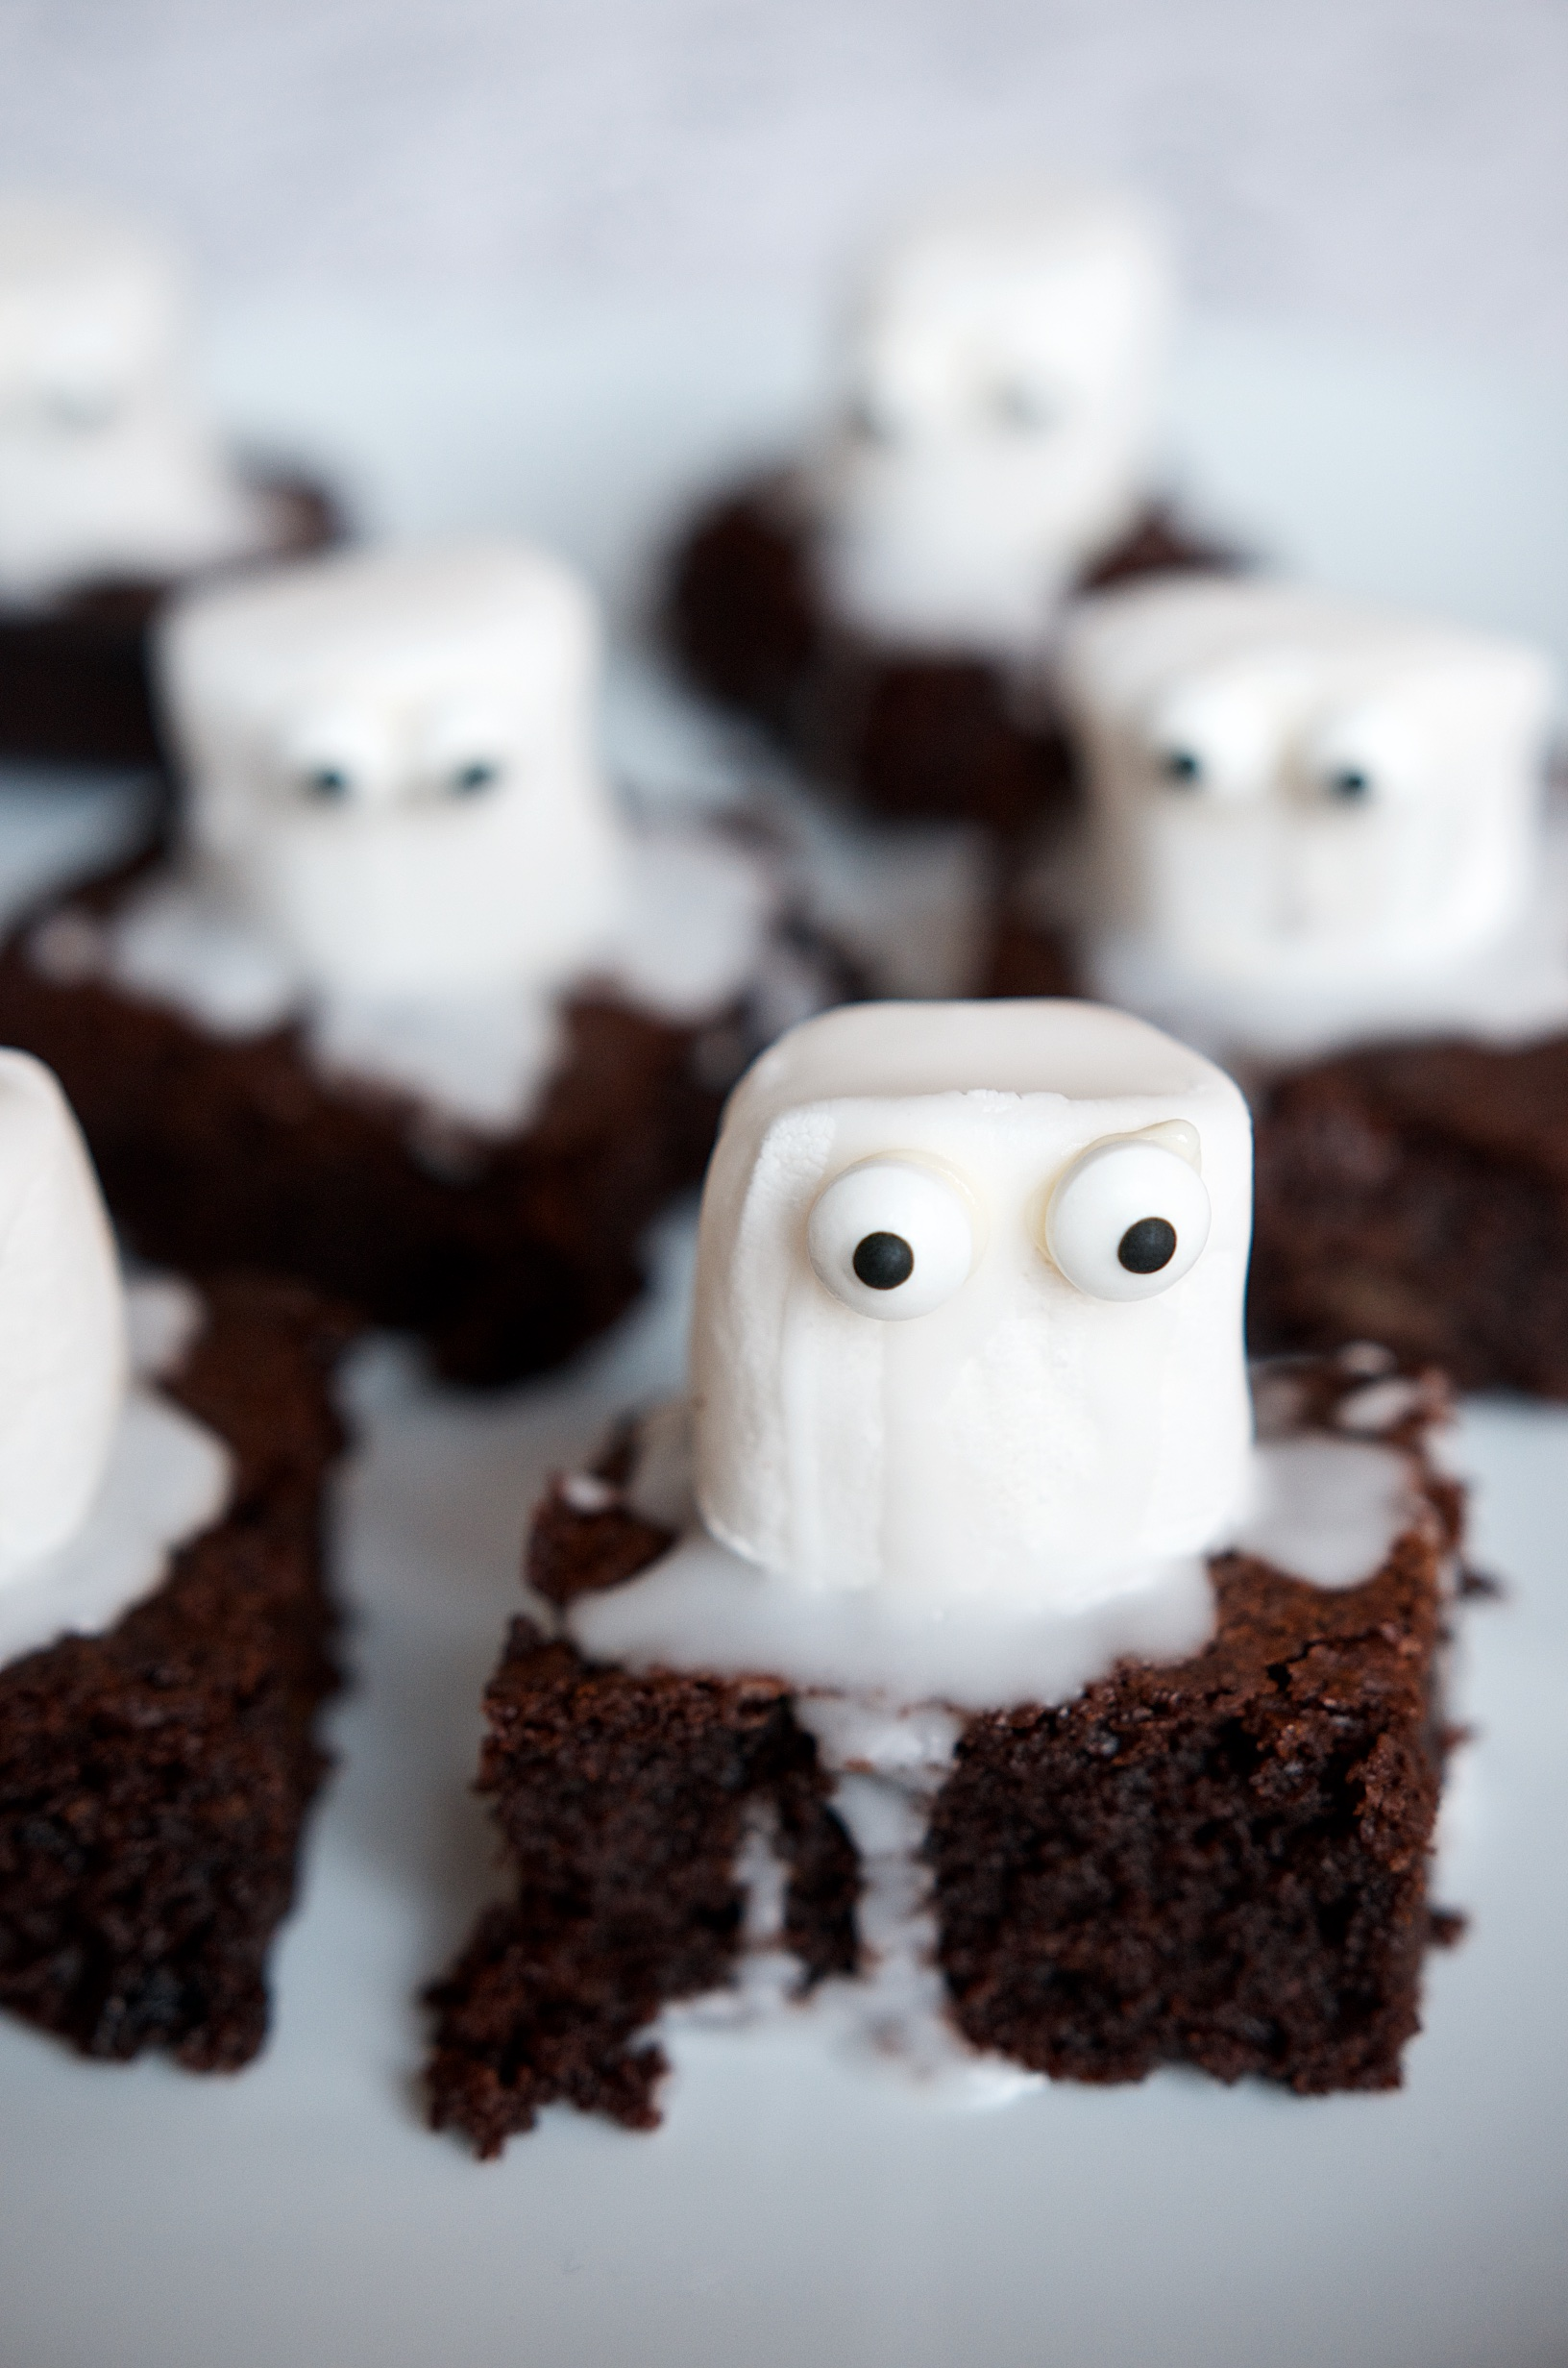 Halloween-Brownies mit Geistern aus Marshmellows